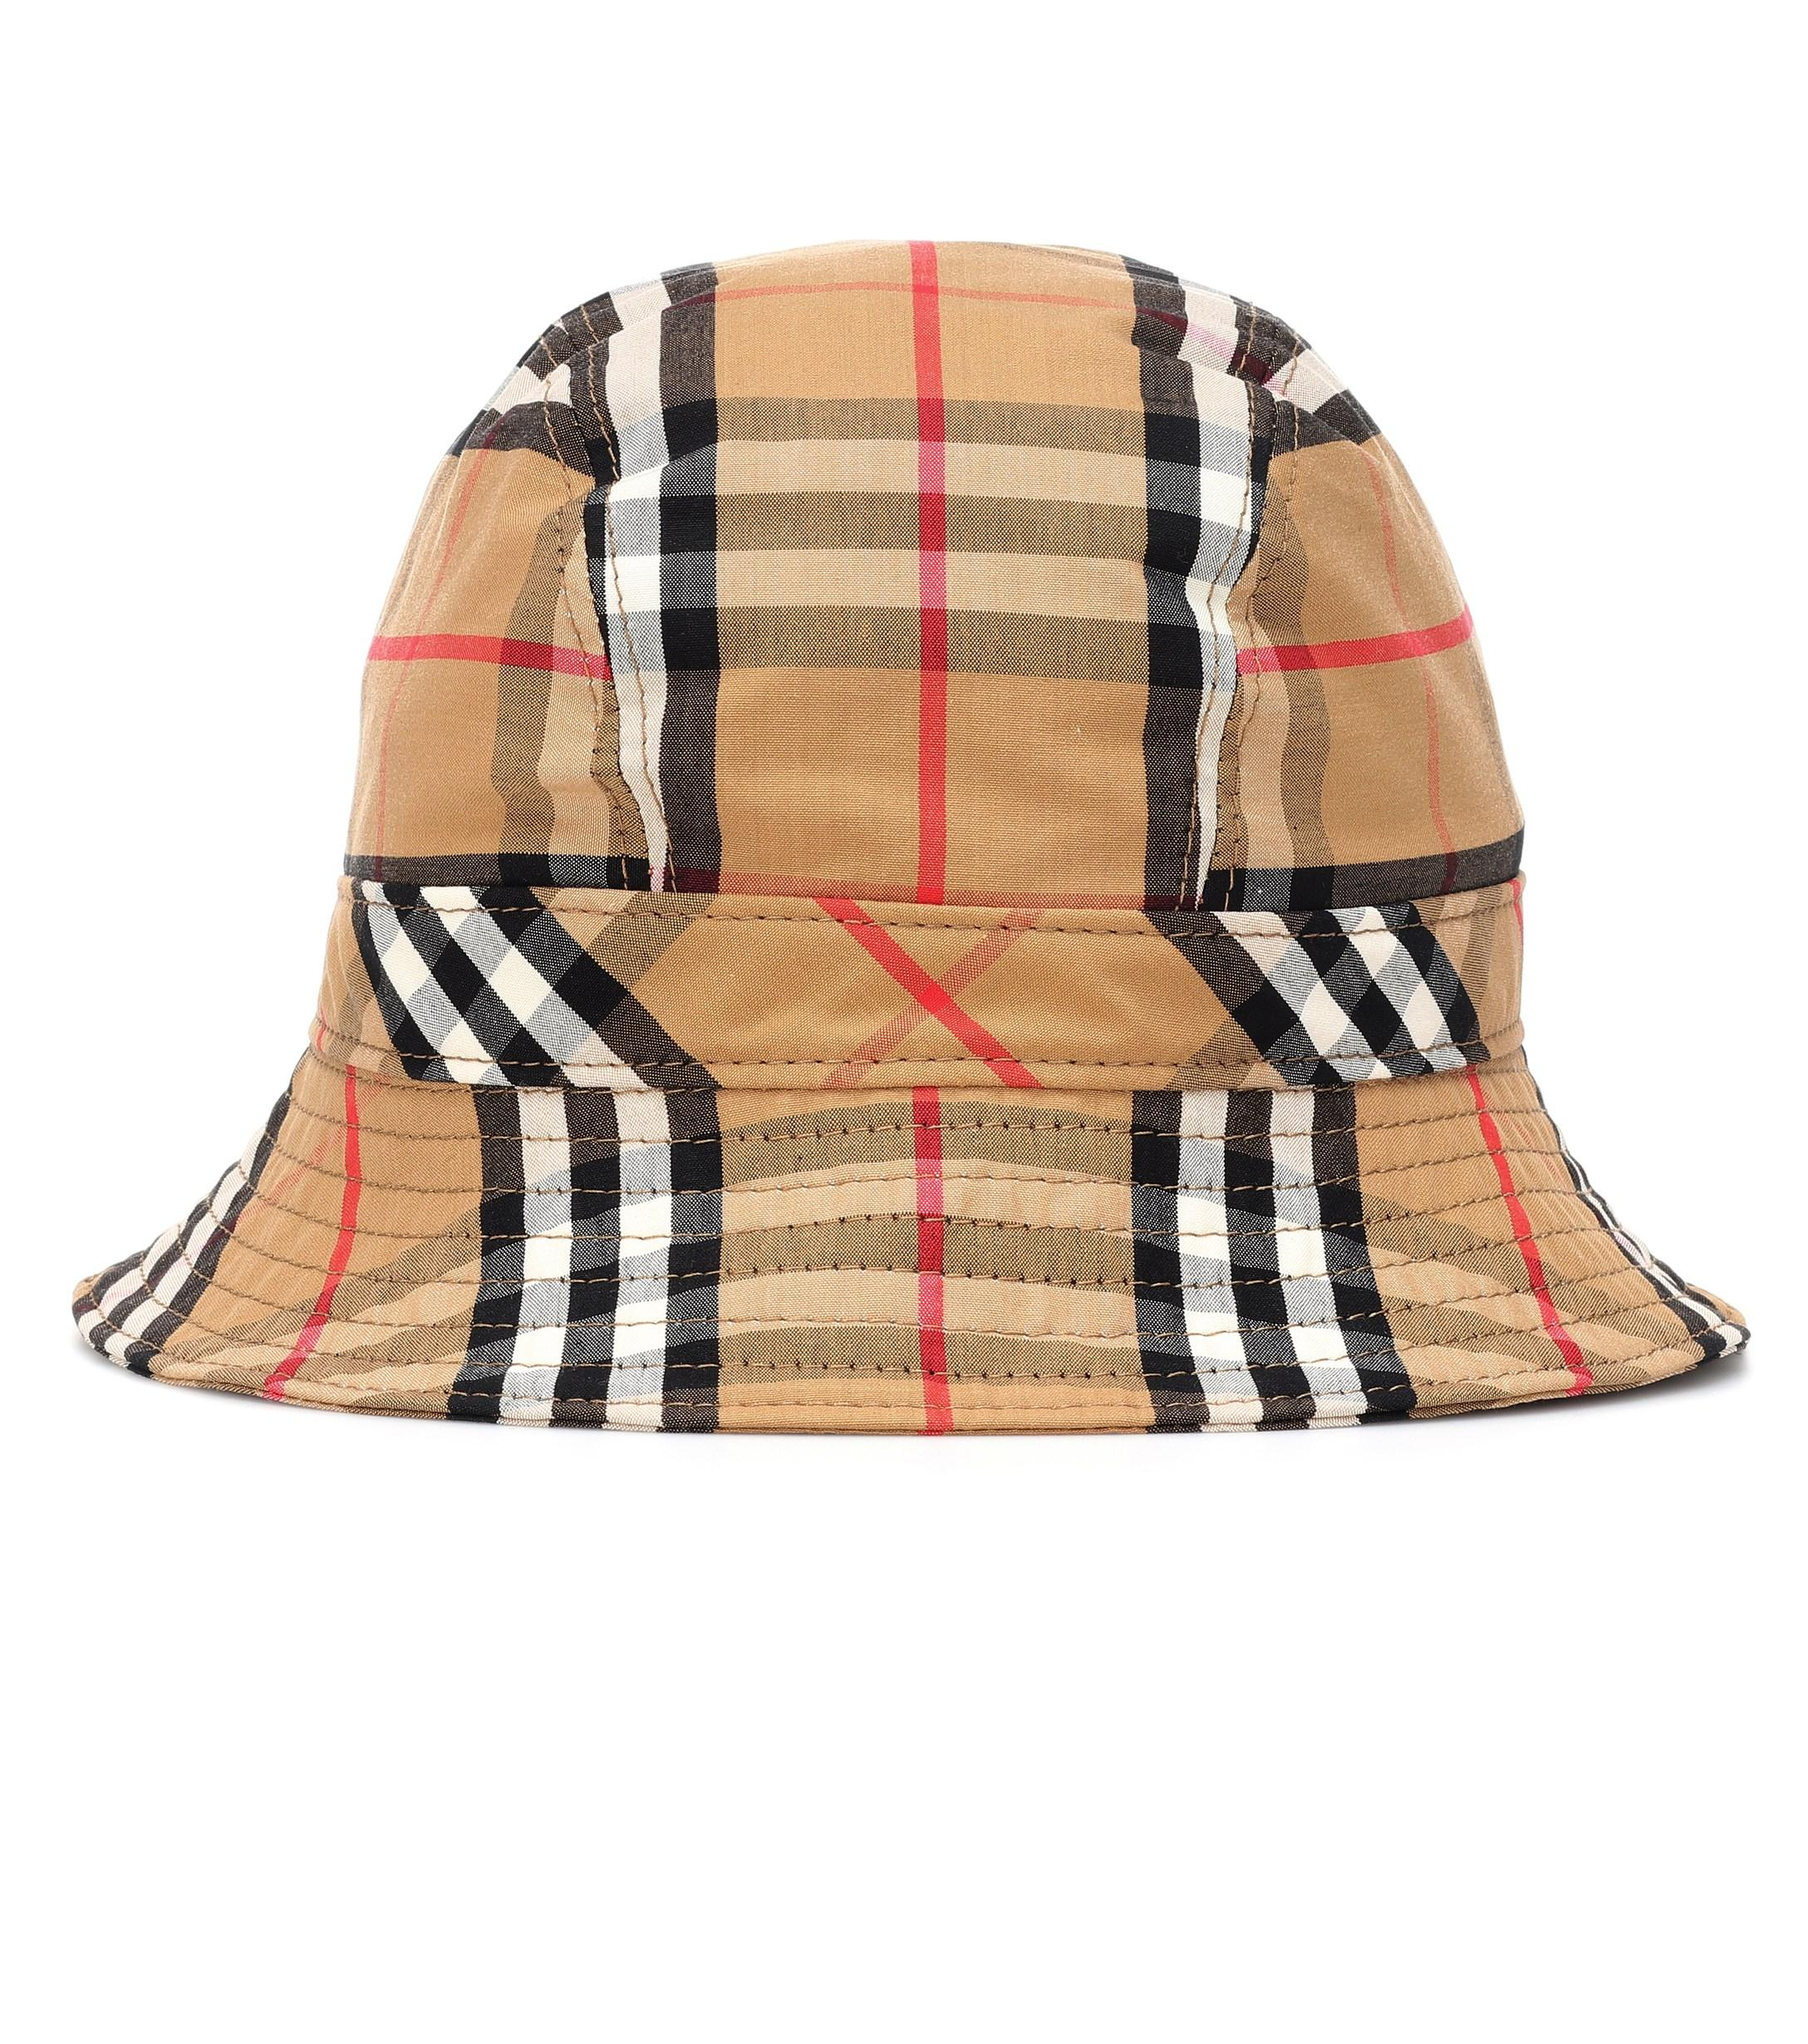 a4777f102bf396 ... Burberry - Multicolor Rainbow Check Bucket Hat - Lyst · Visit  Mytheresa. Tap to visit site